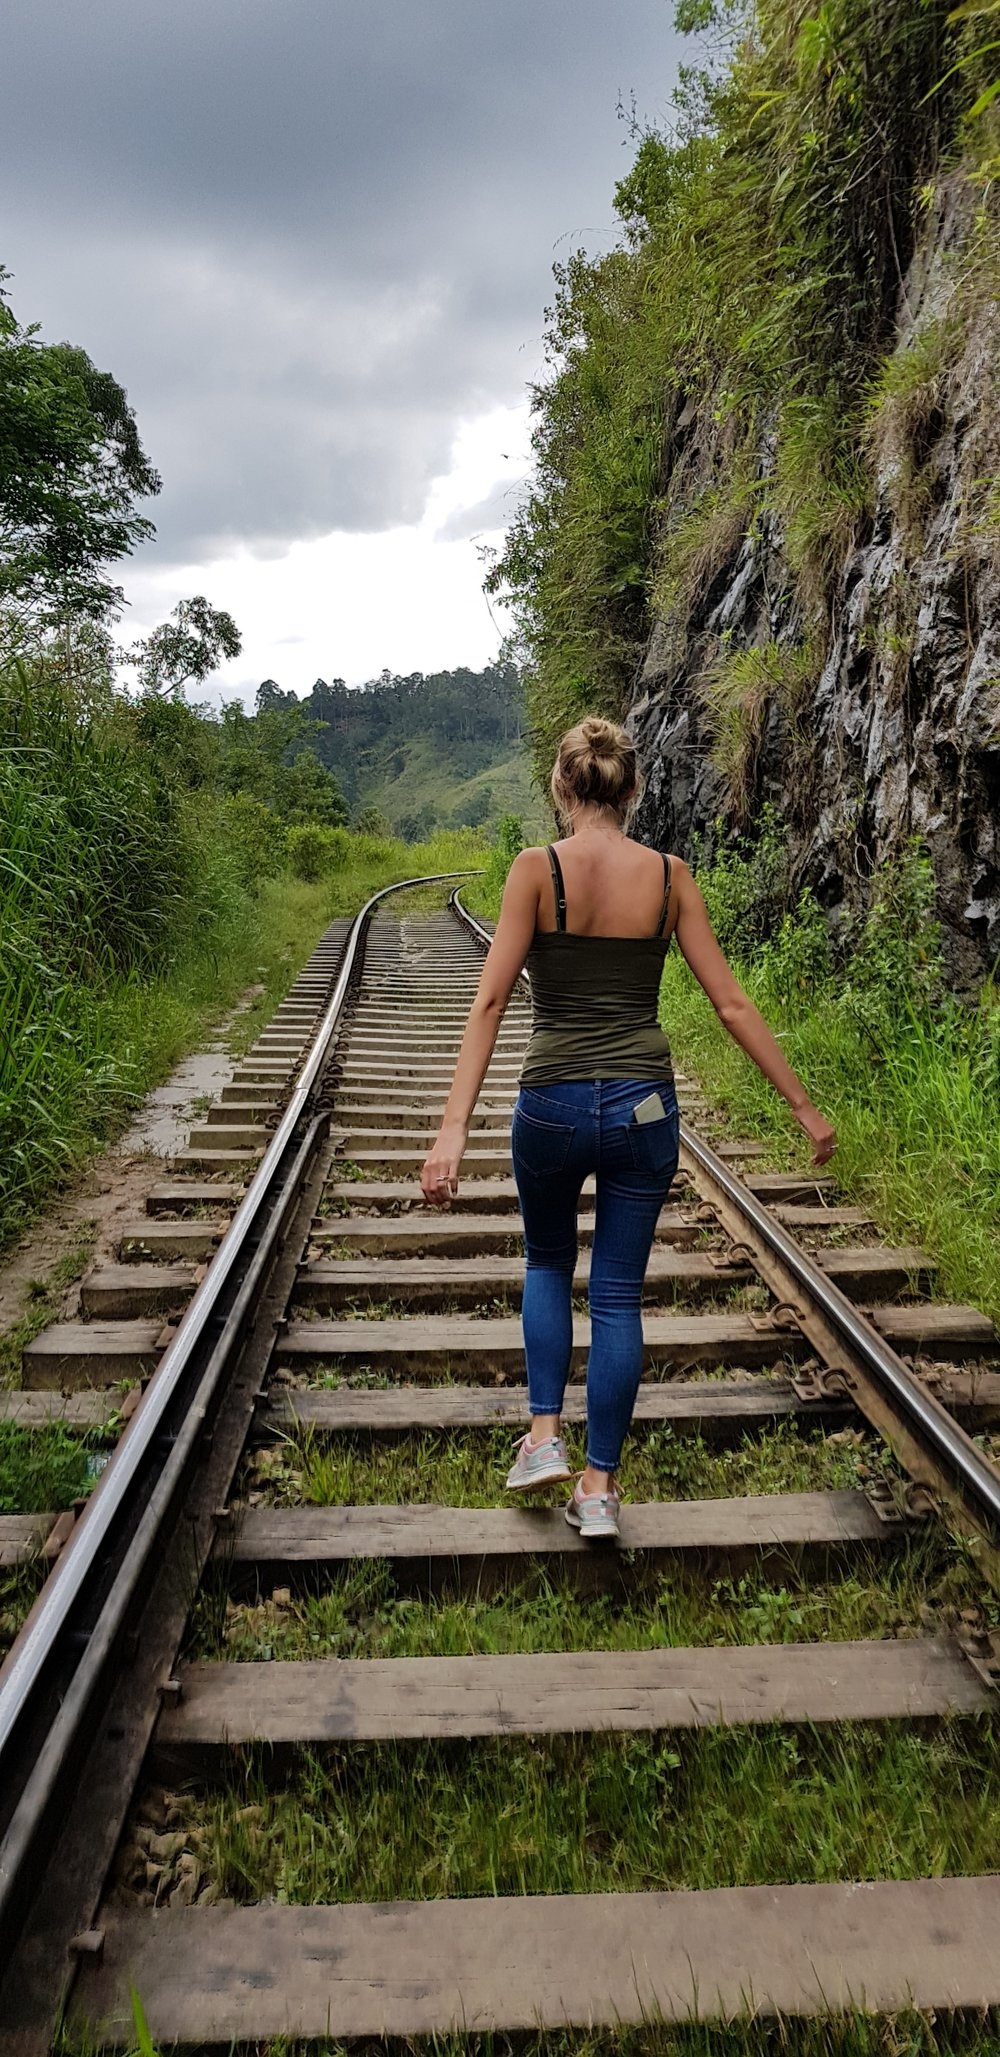 invite-to-paradise-sri-lanka-holiday-honeymoon-specialists-customer-feedback-fleur-simon-minshull-railway-tracks.jpg